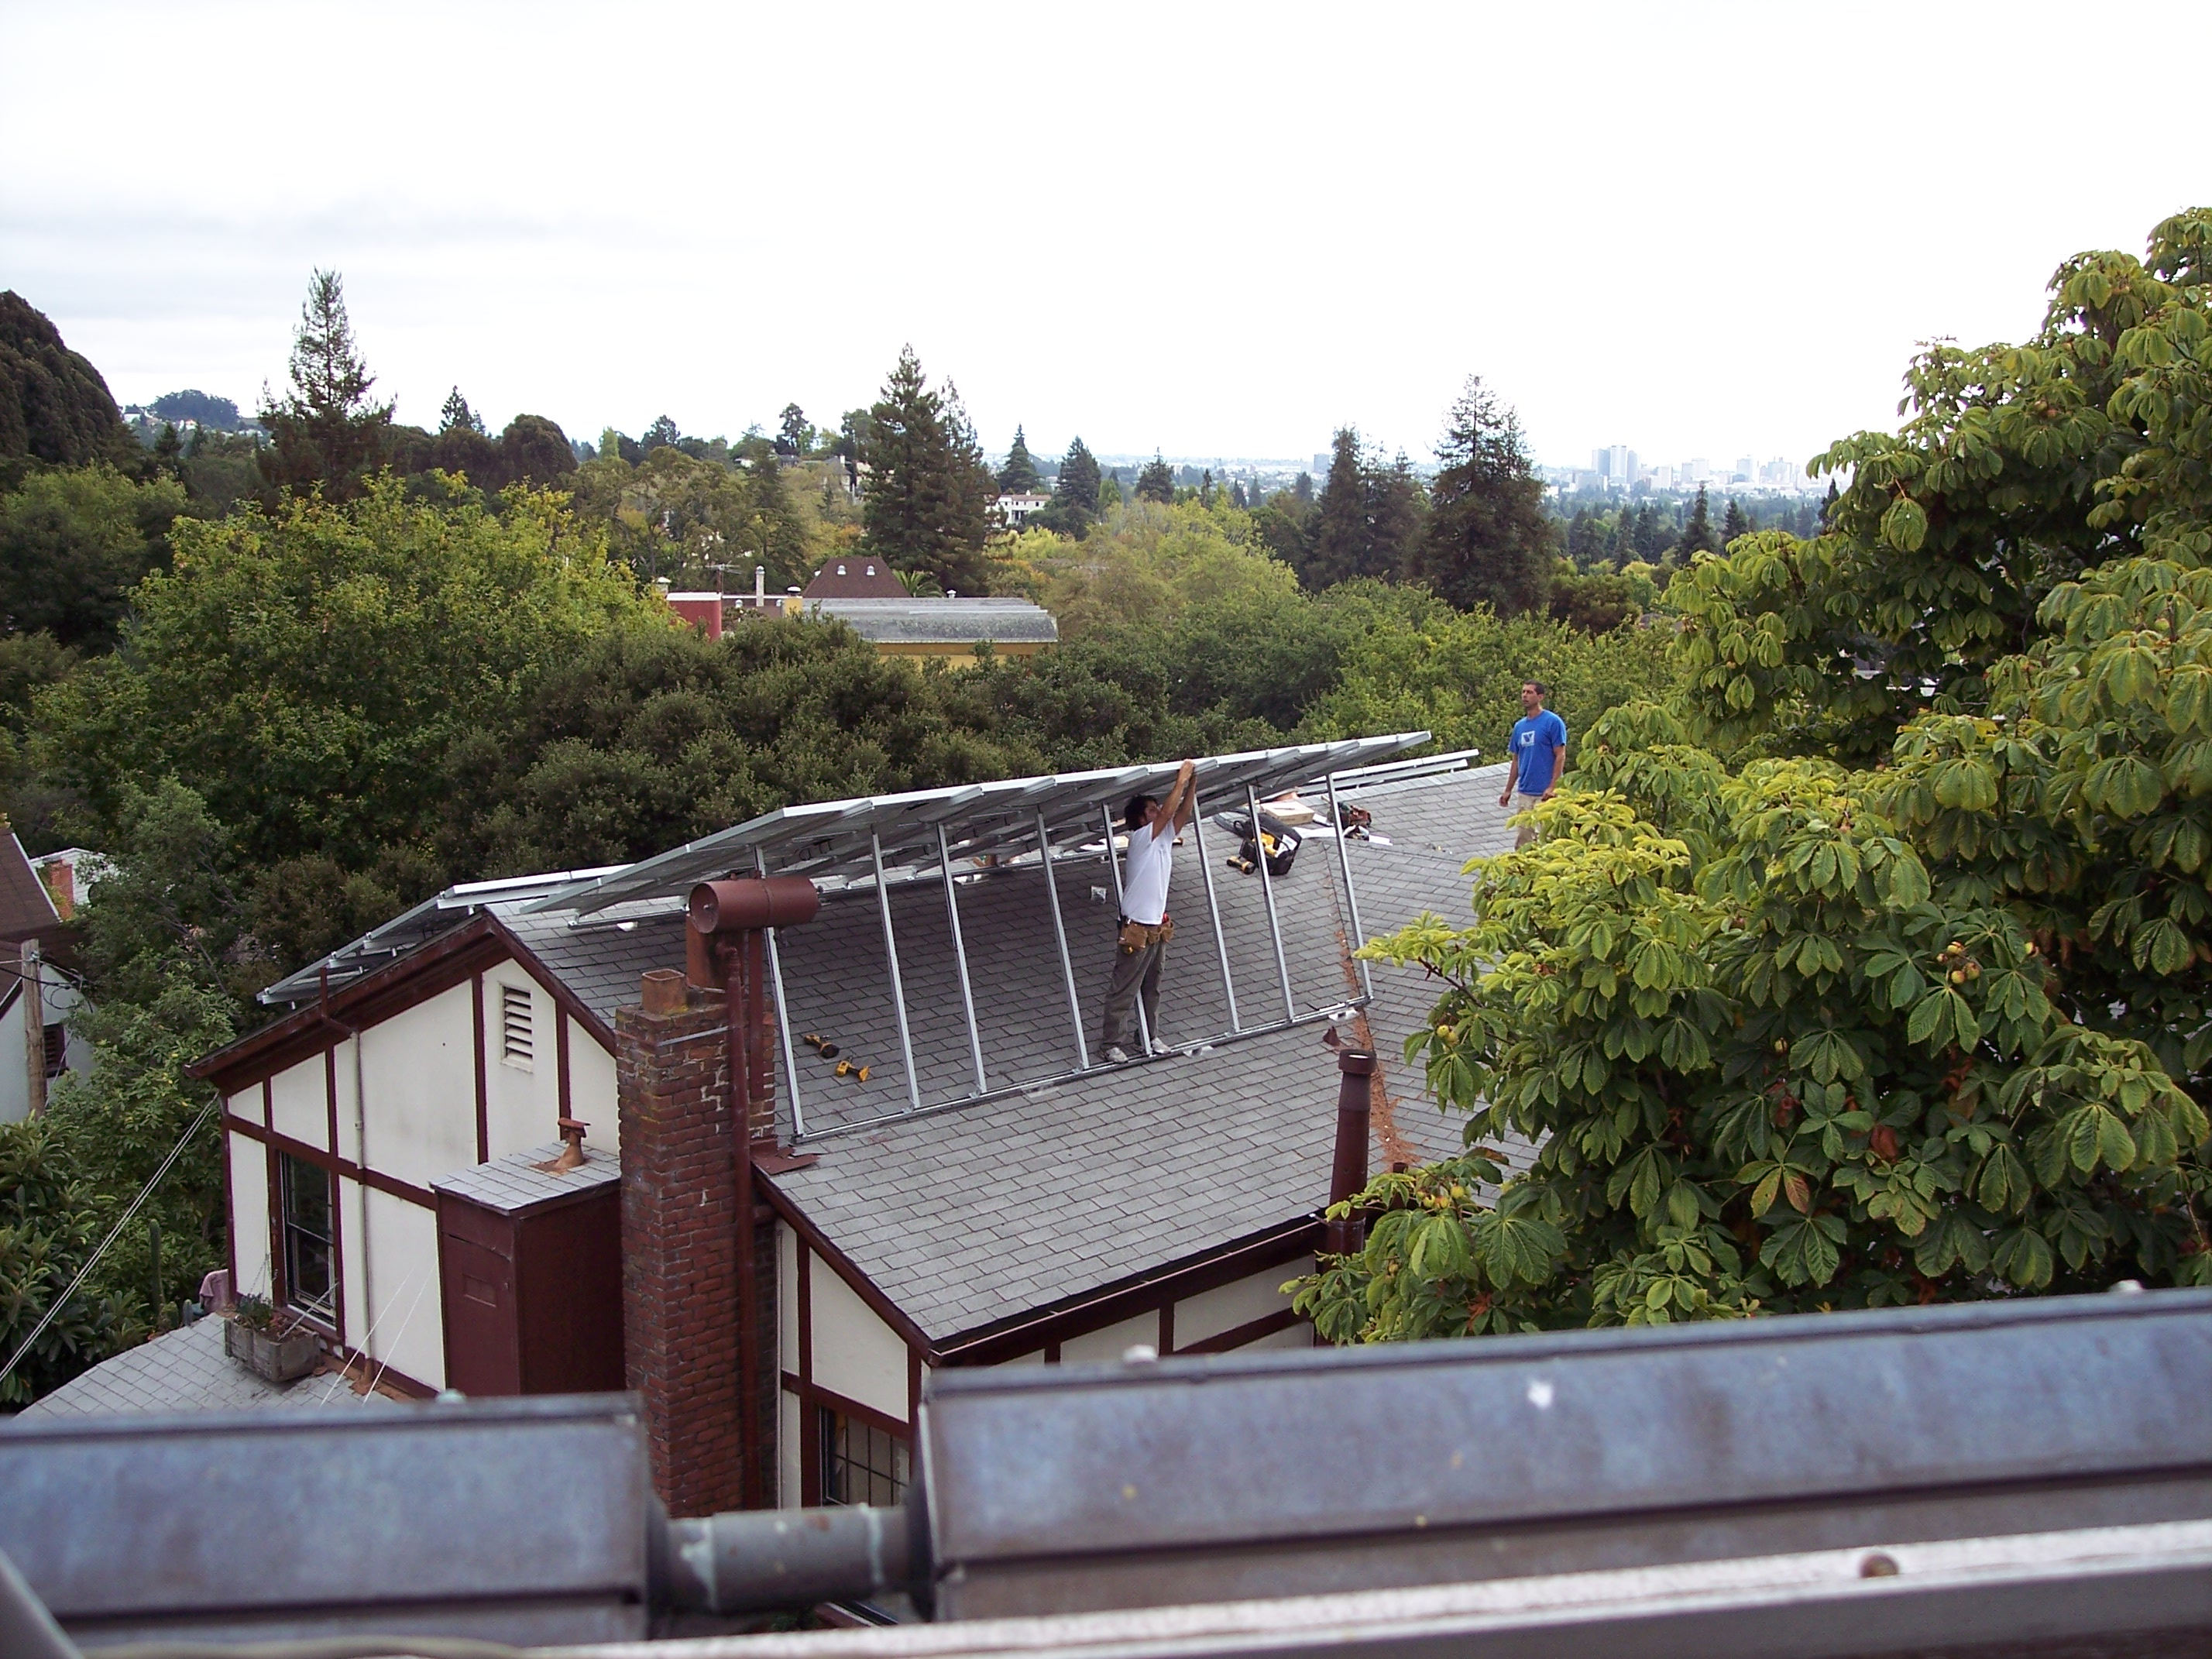 File Pv Solar Installers On Sloped Roof Jpg Wikipedia